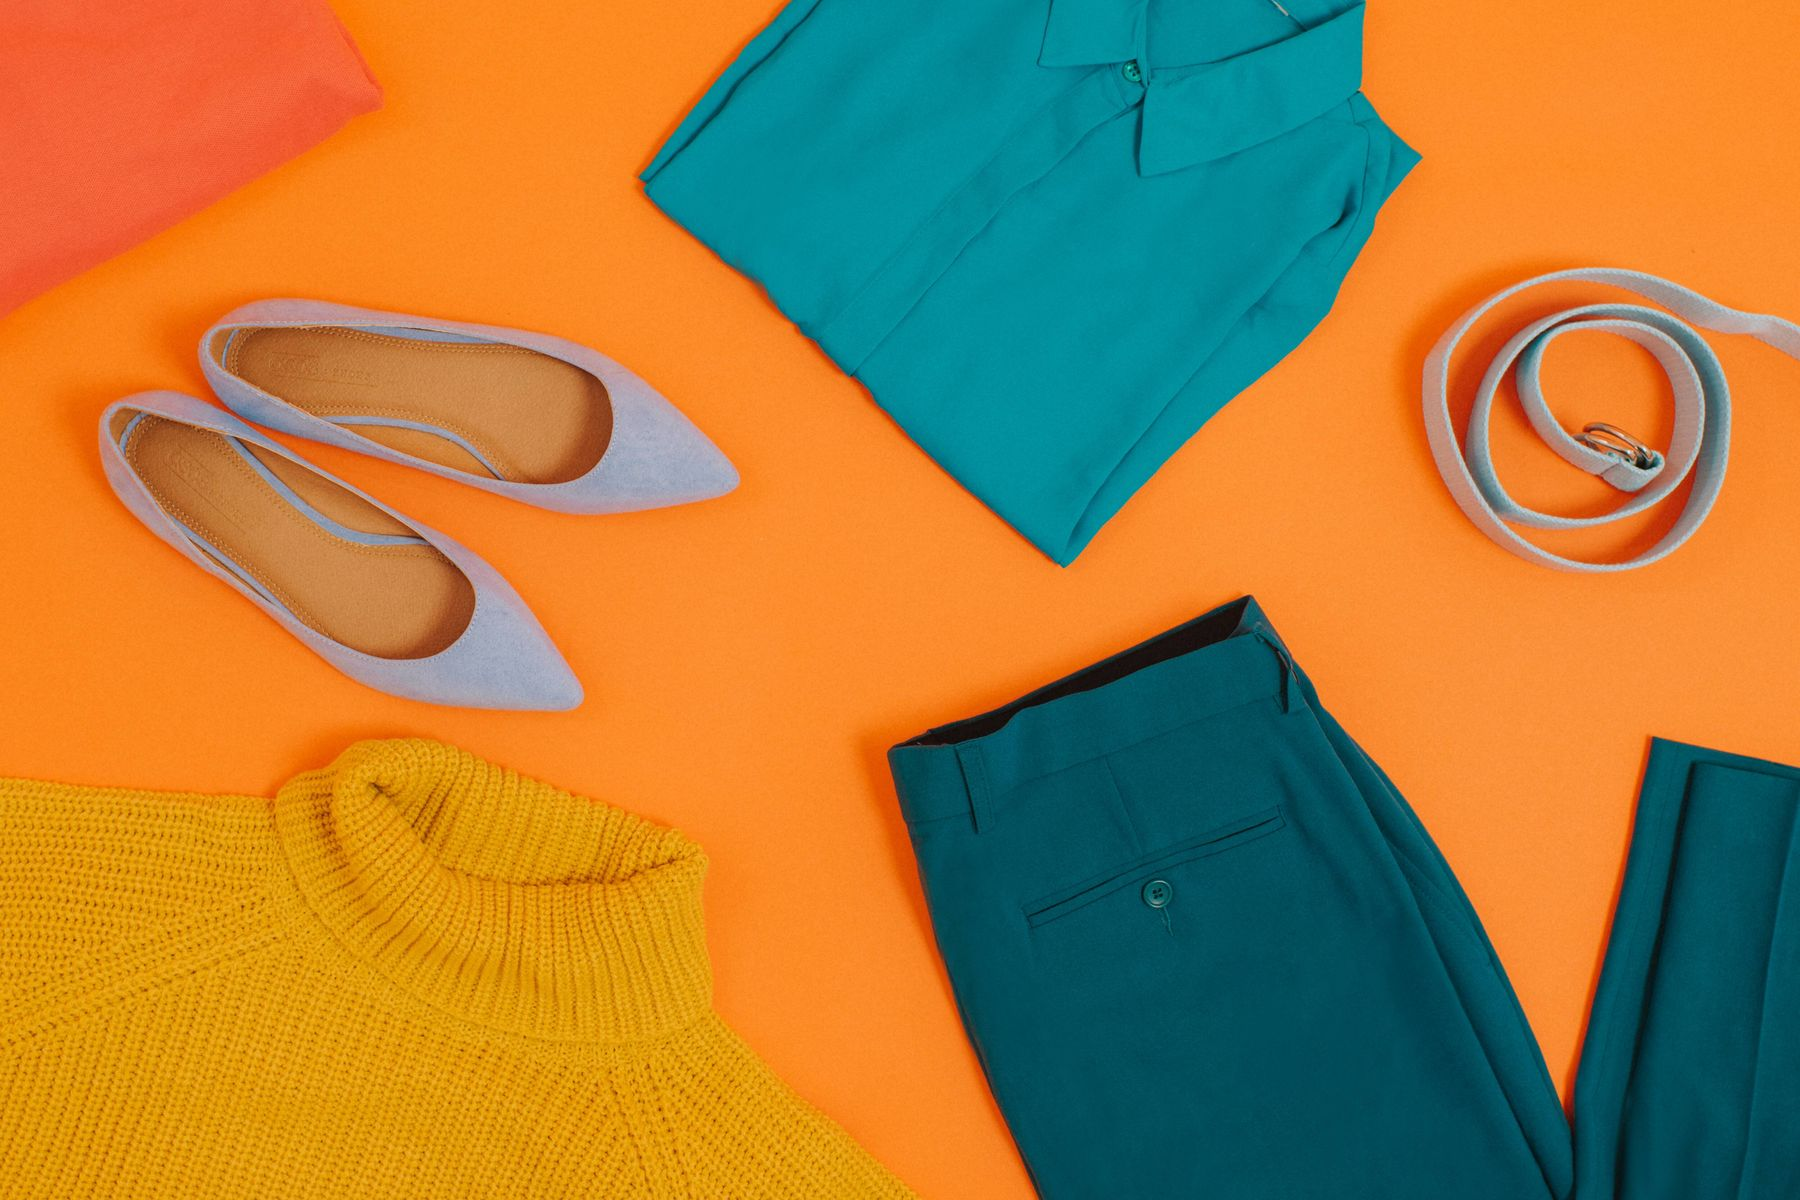 Orange backdrop, with an assortment of women's folded clothes and accessories